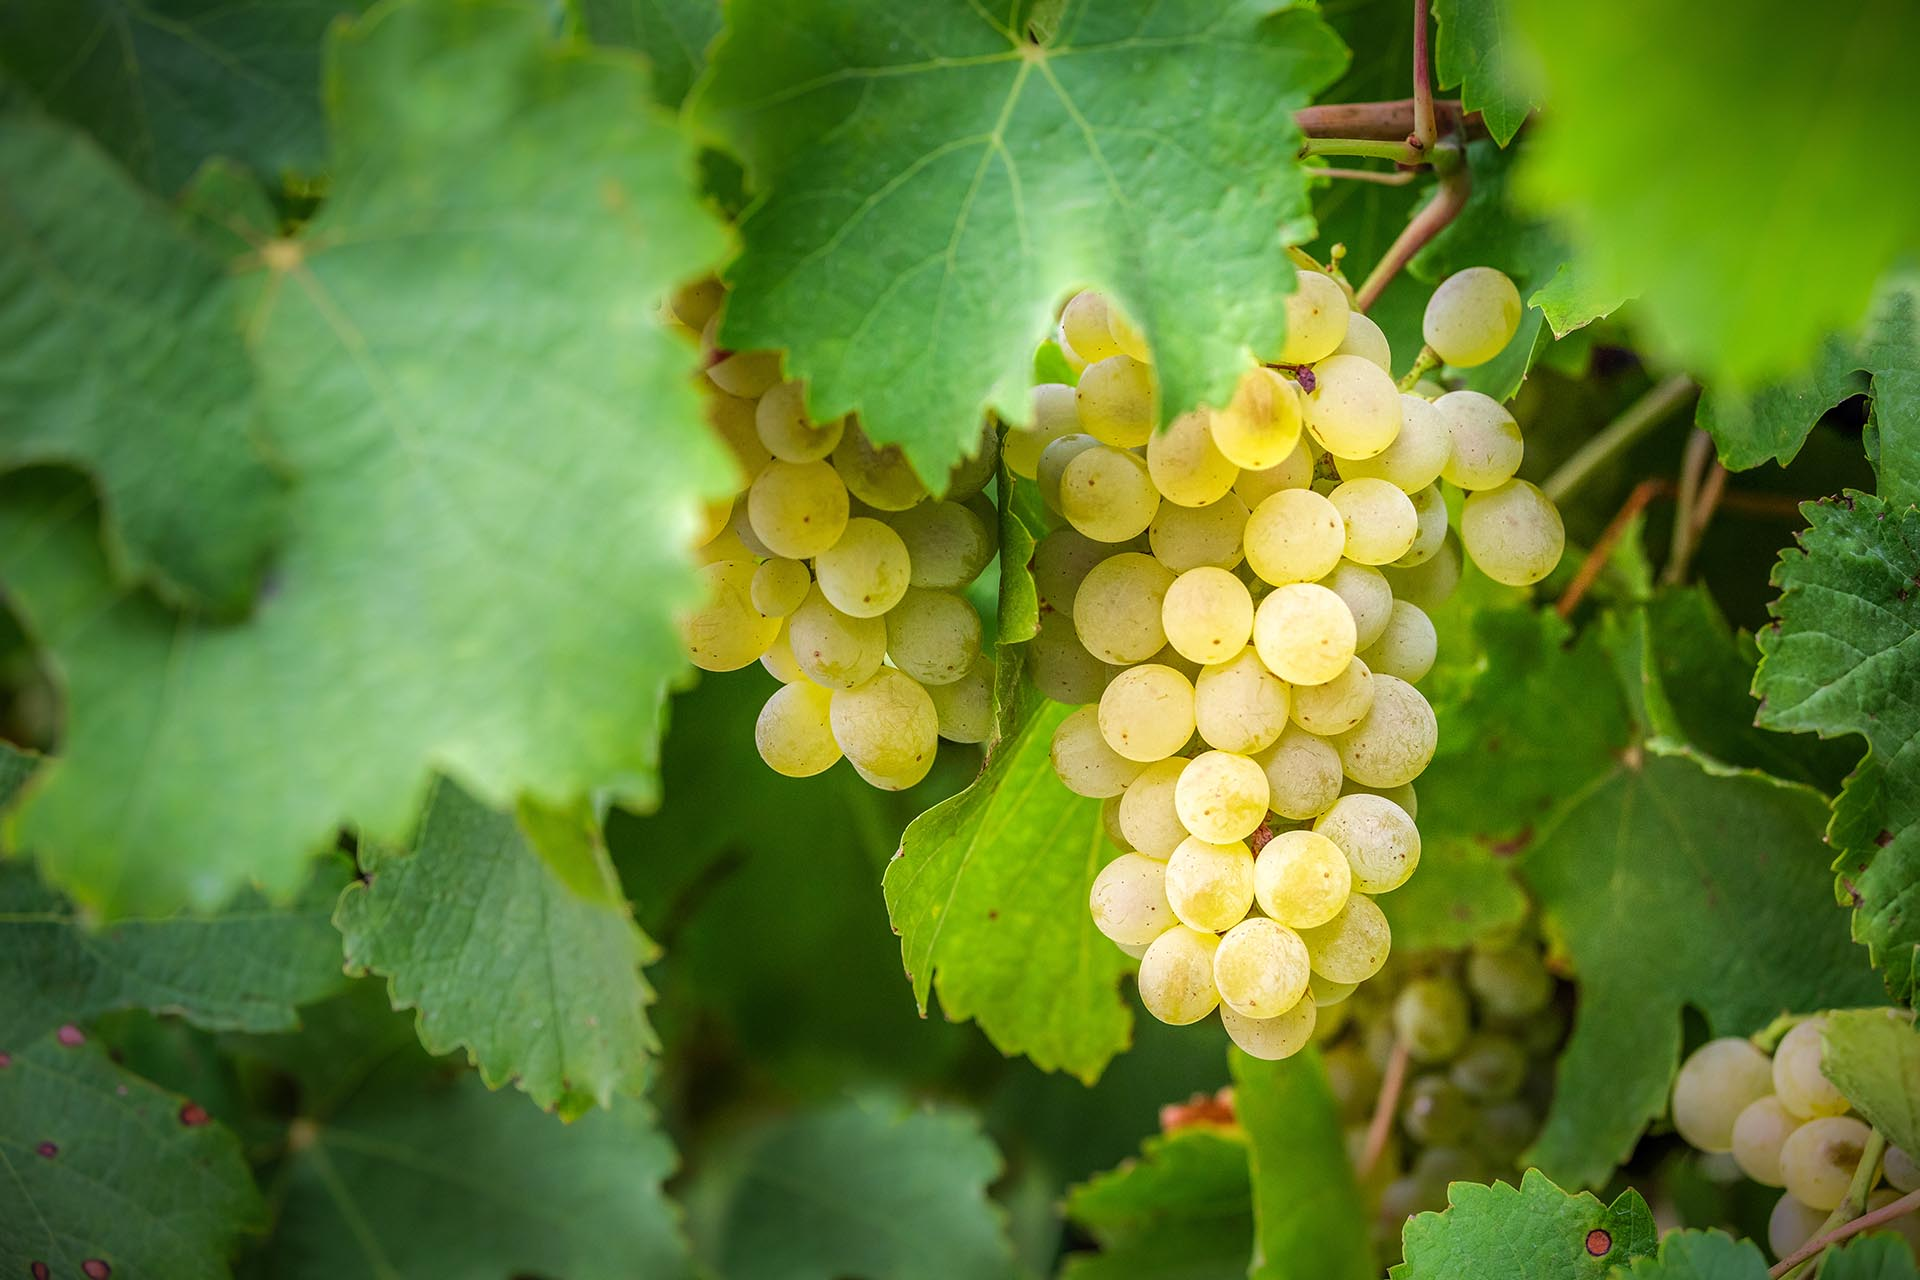 Ripe Chardonnay grape bunch hanging on the vine with leaves in Western Australia.